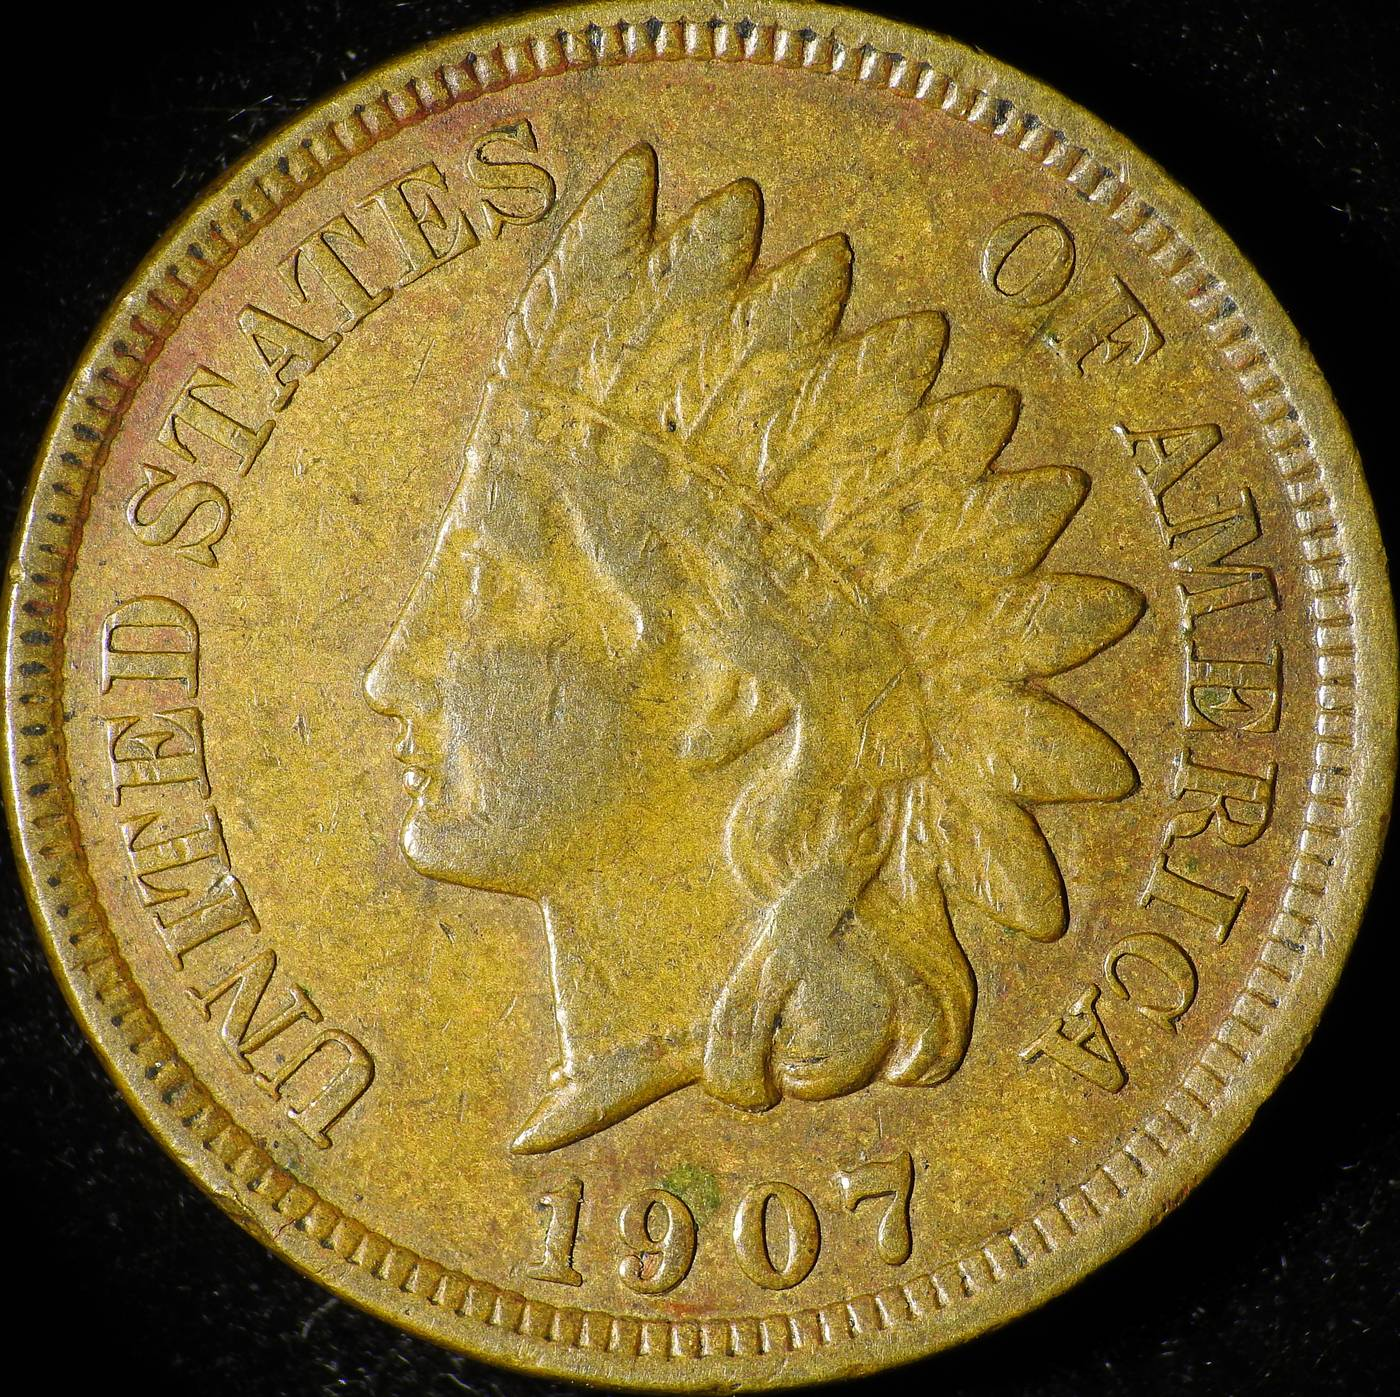 1907 RPD-056 - Indian Head Penny